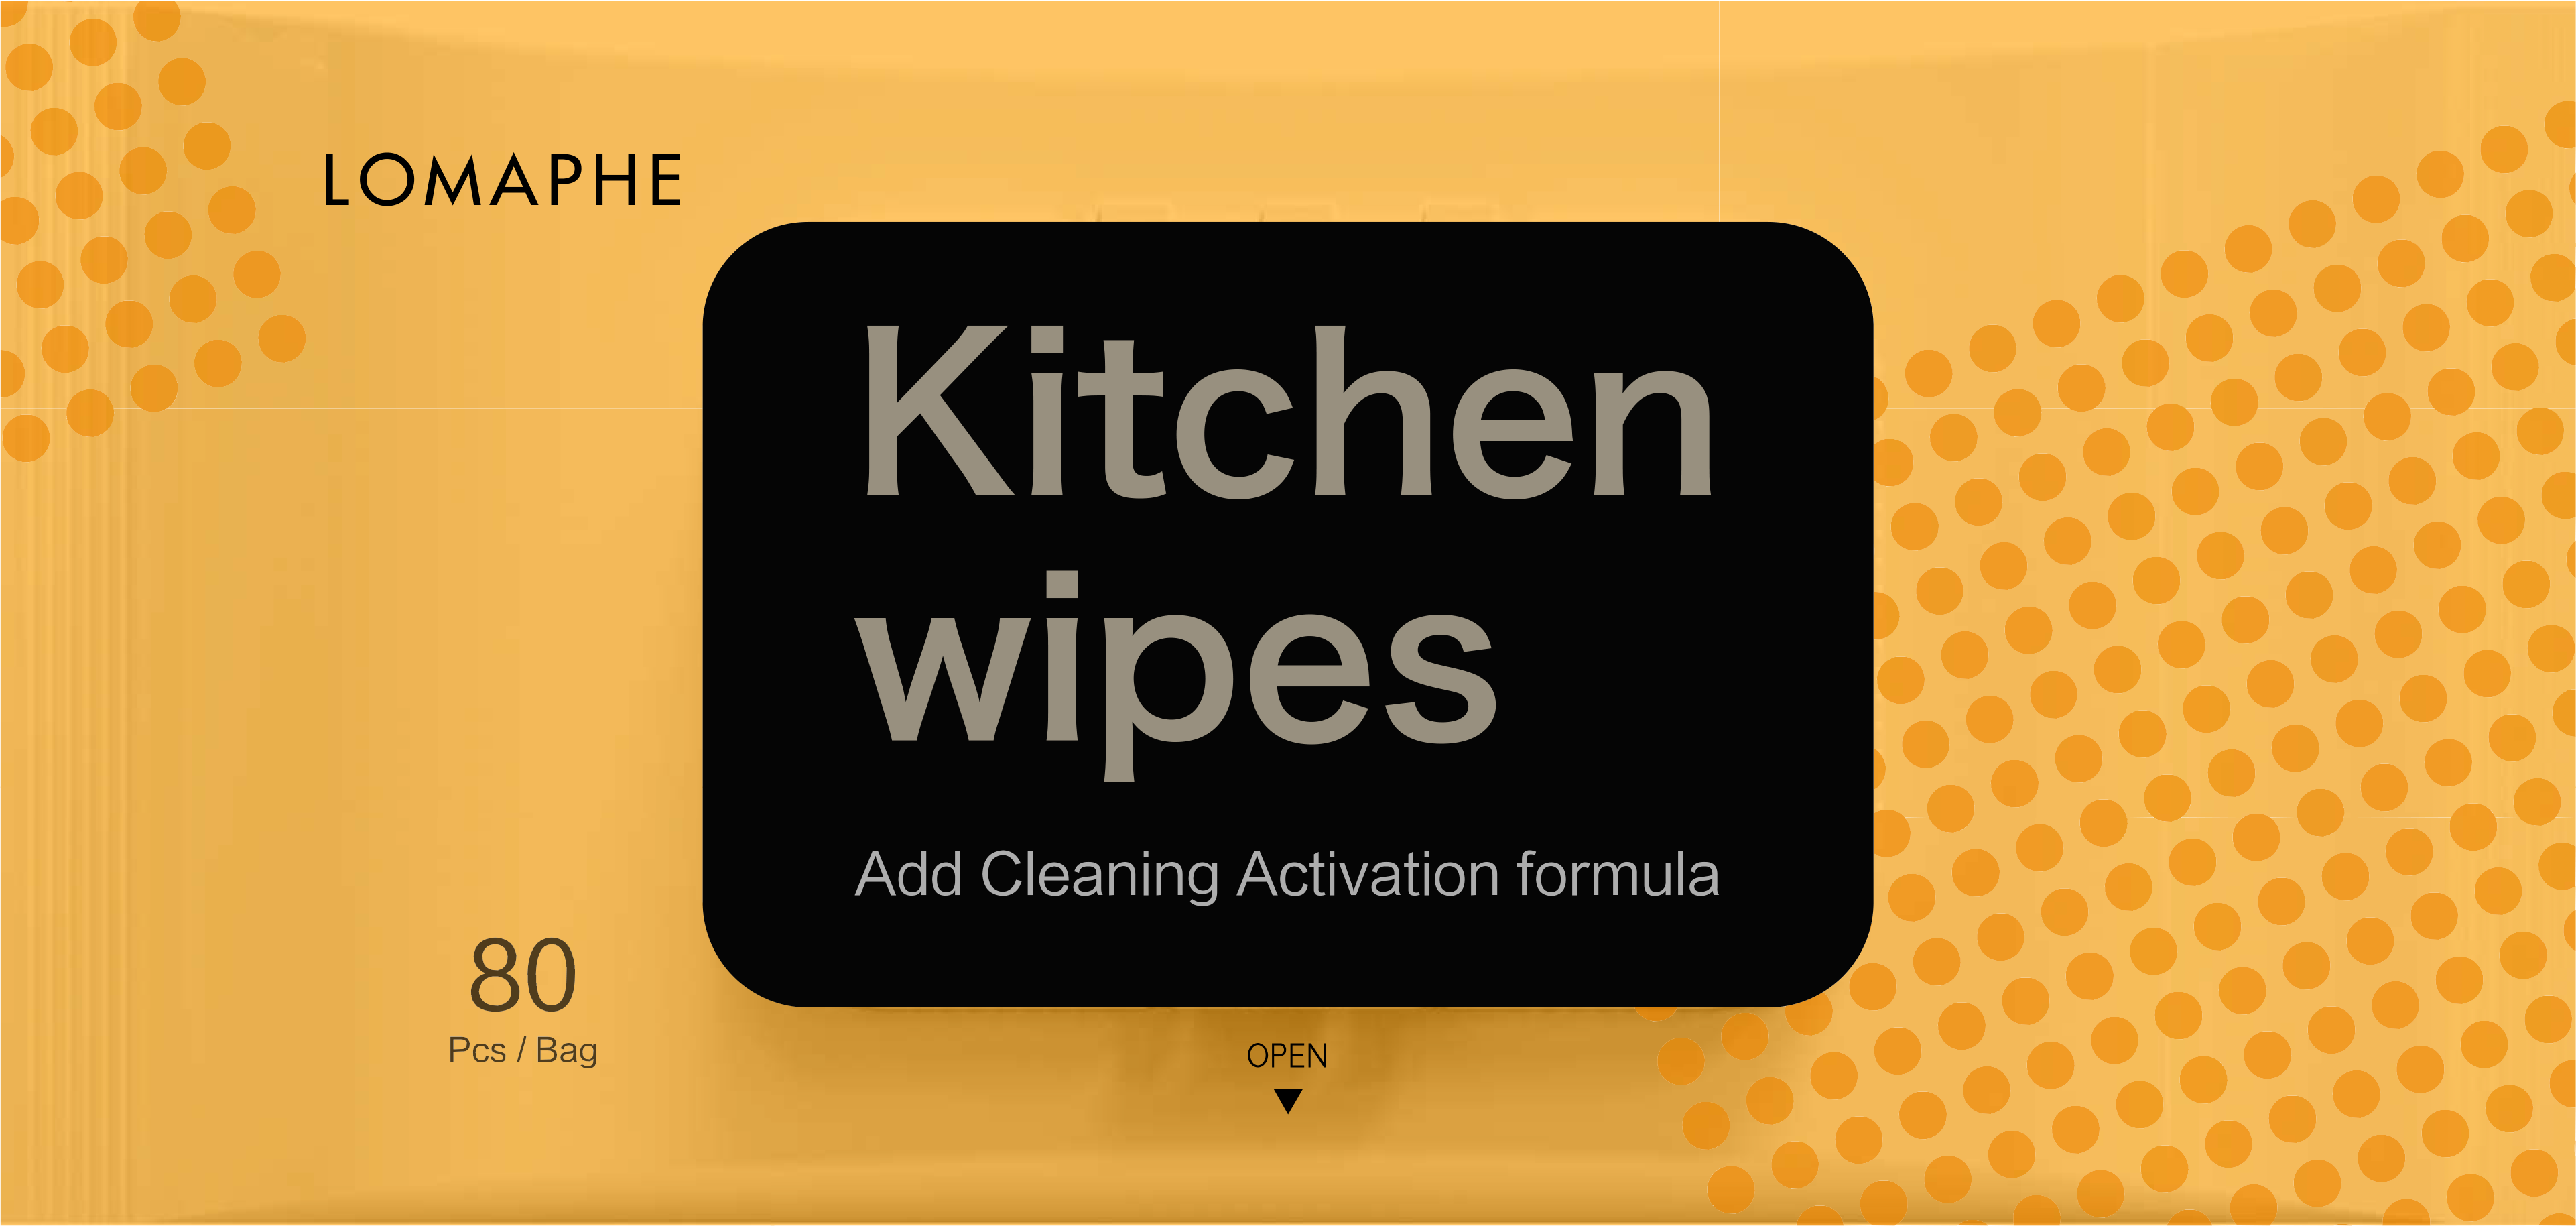 disinfecting wipes manufacturers,disinfecting wipes